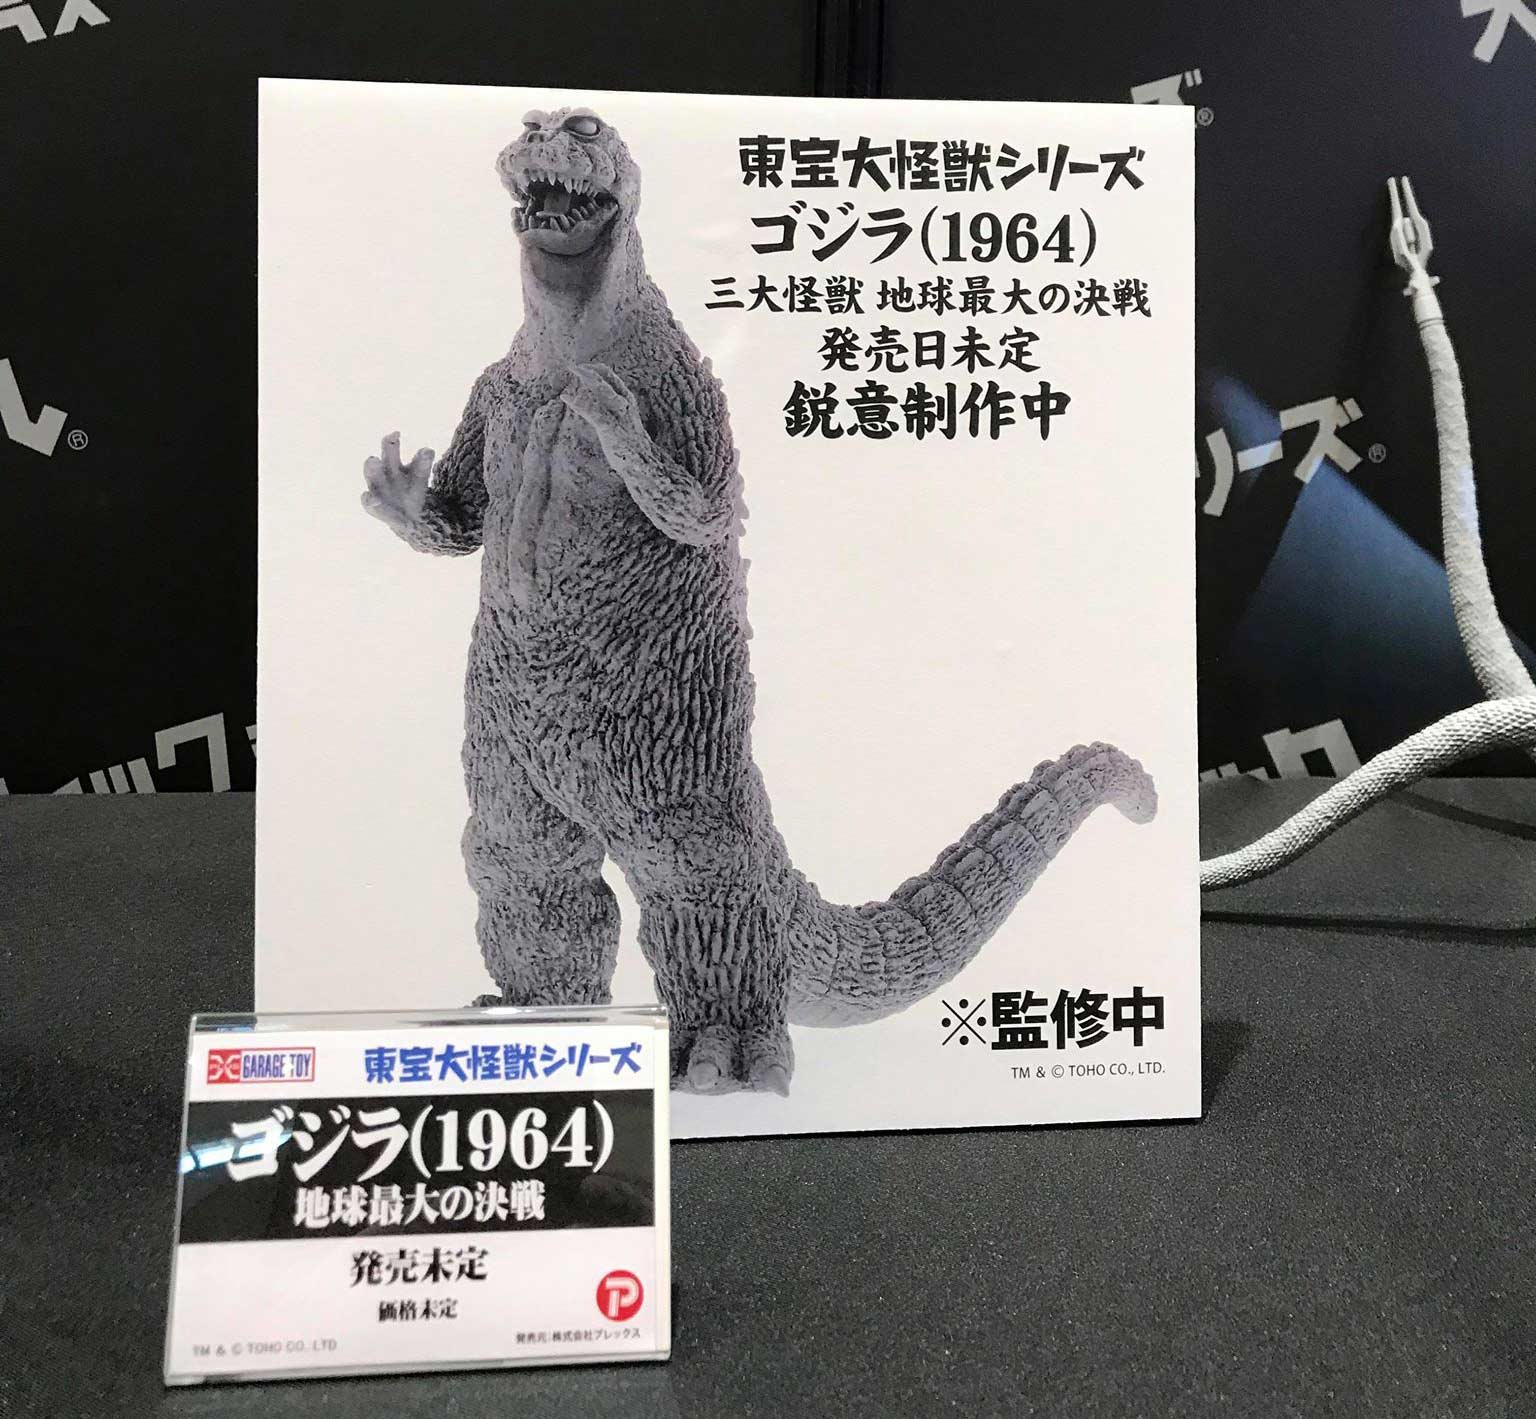 Poster of the Large Monster Series Godzilla 1964 B vinyl figure by X-Plus.